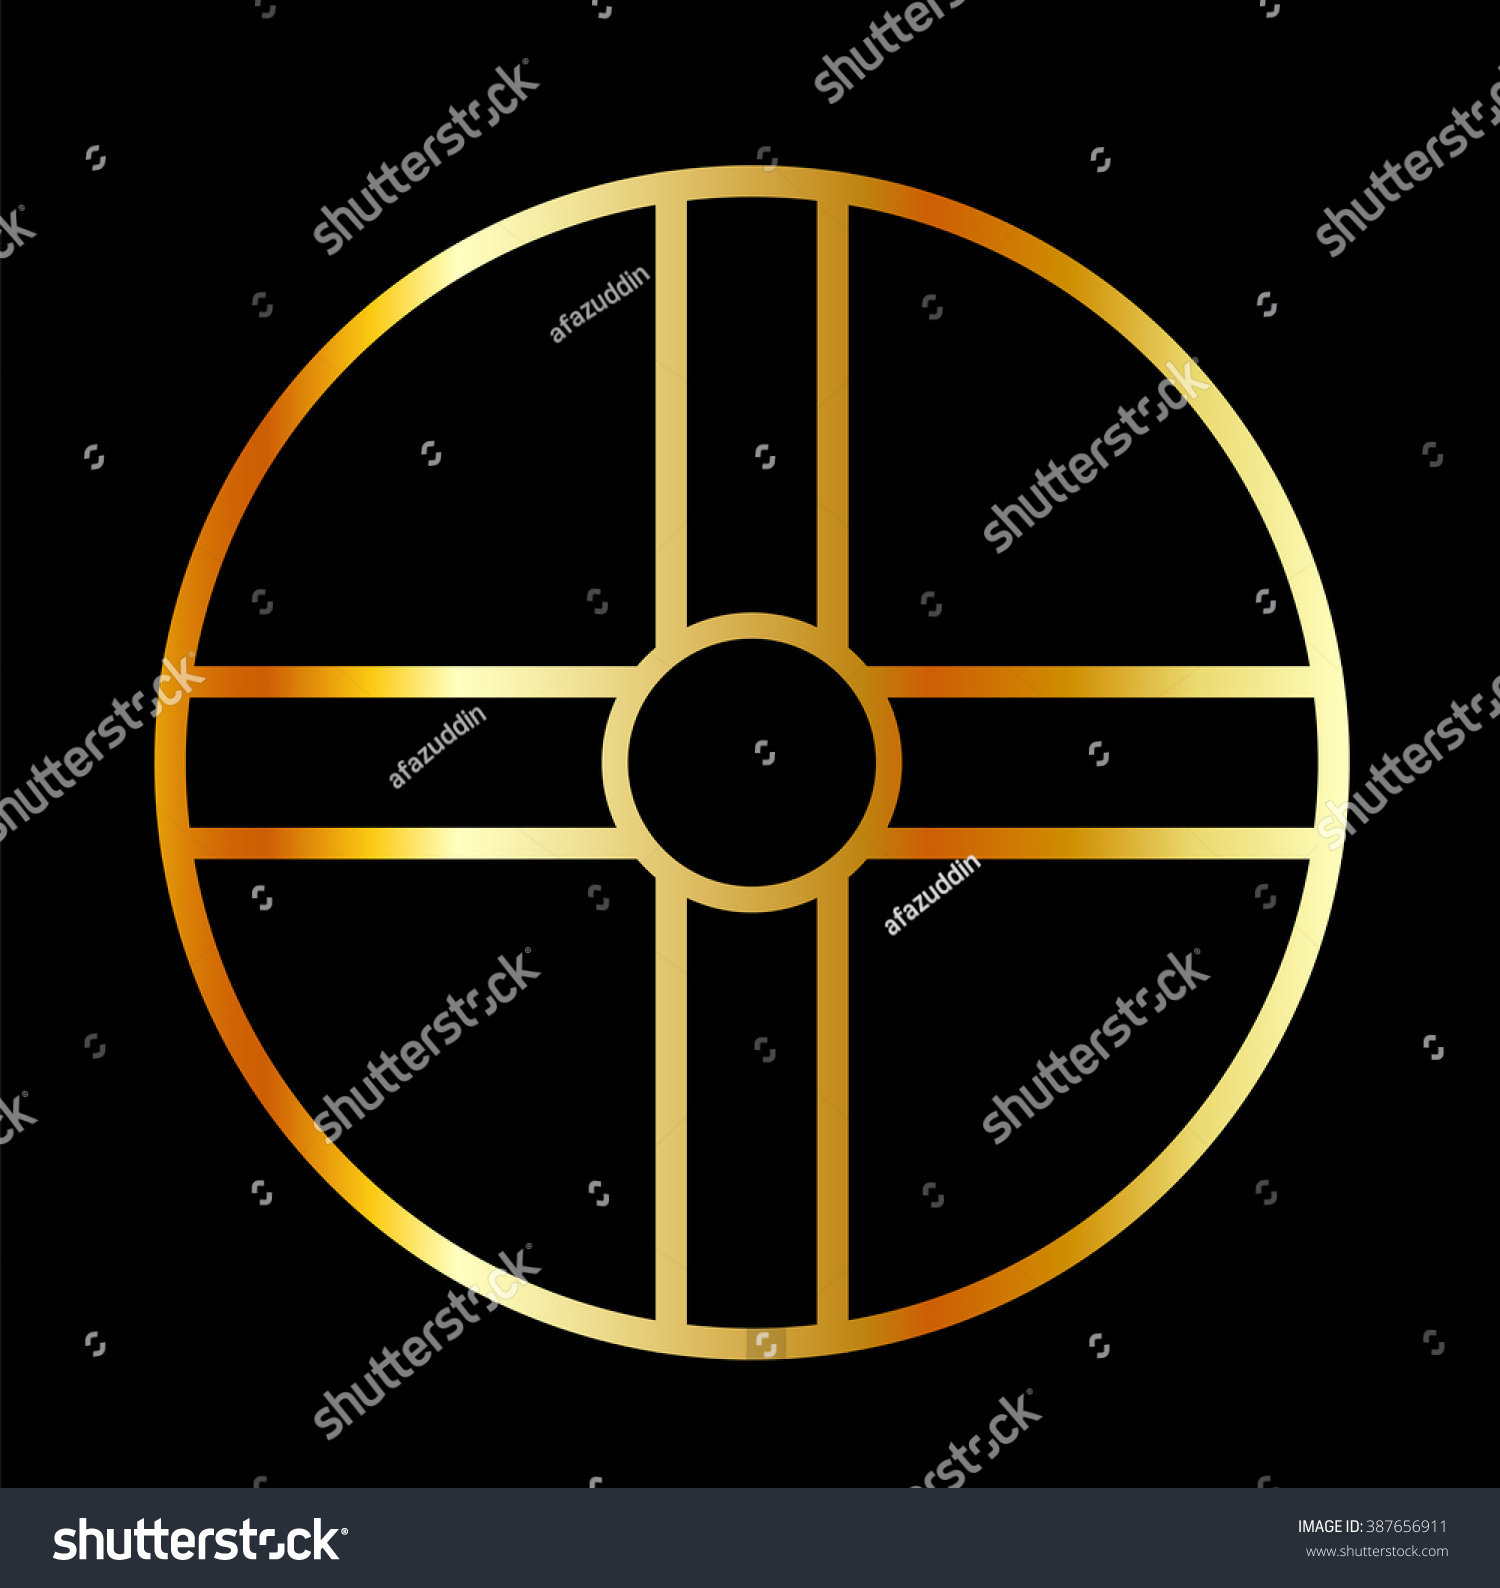 Image result for picture of solar cross